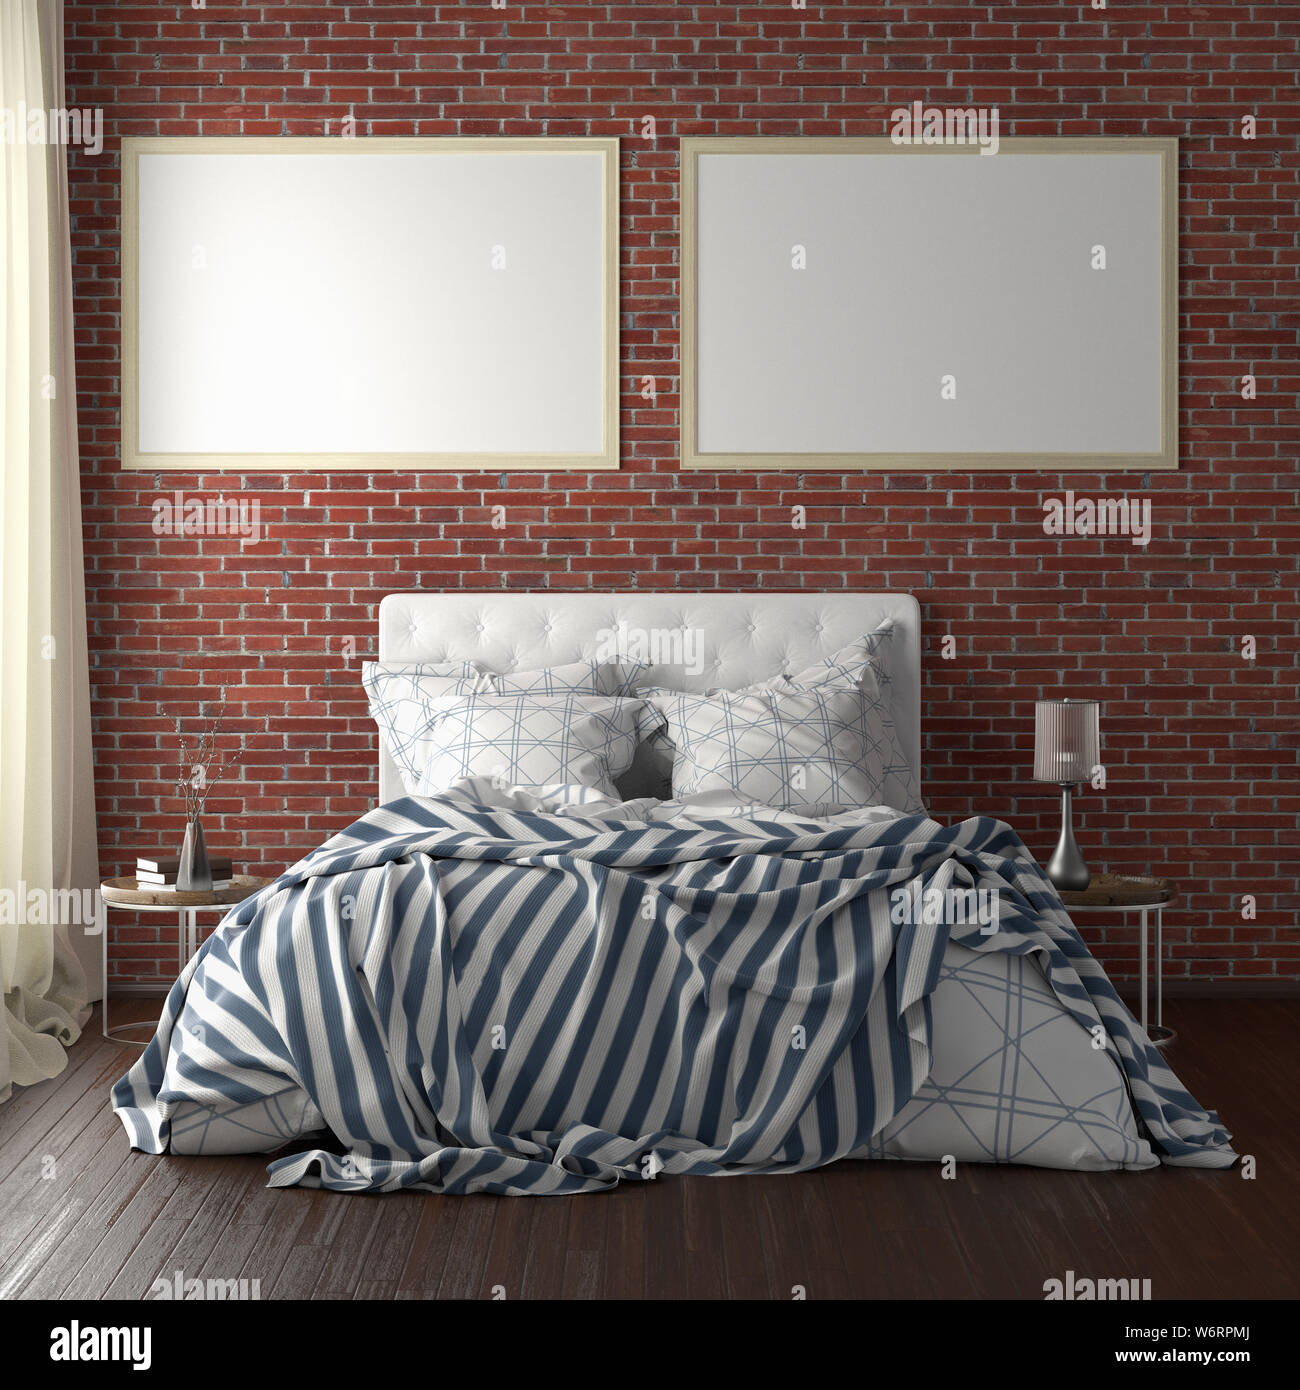 Two horizontal poster frame mockups above the bed on red brick wall in bedroom. Soft morning light through the curtain. 3d illustration Stock Photo